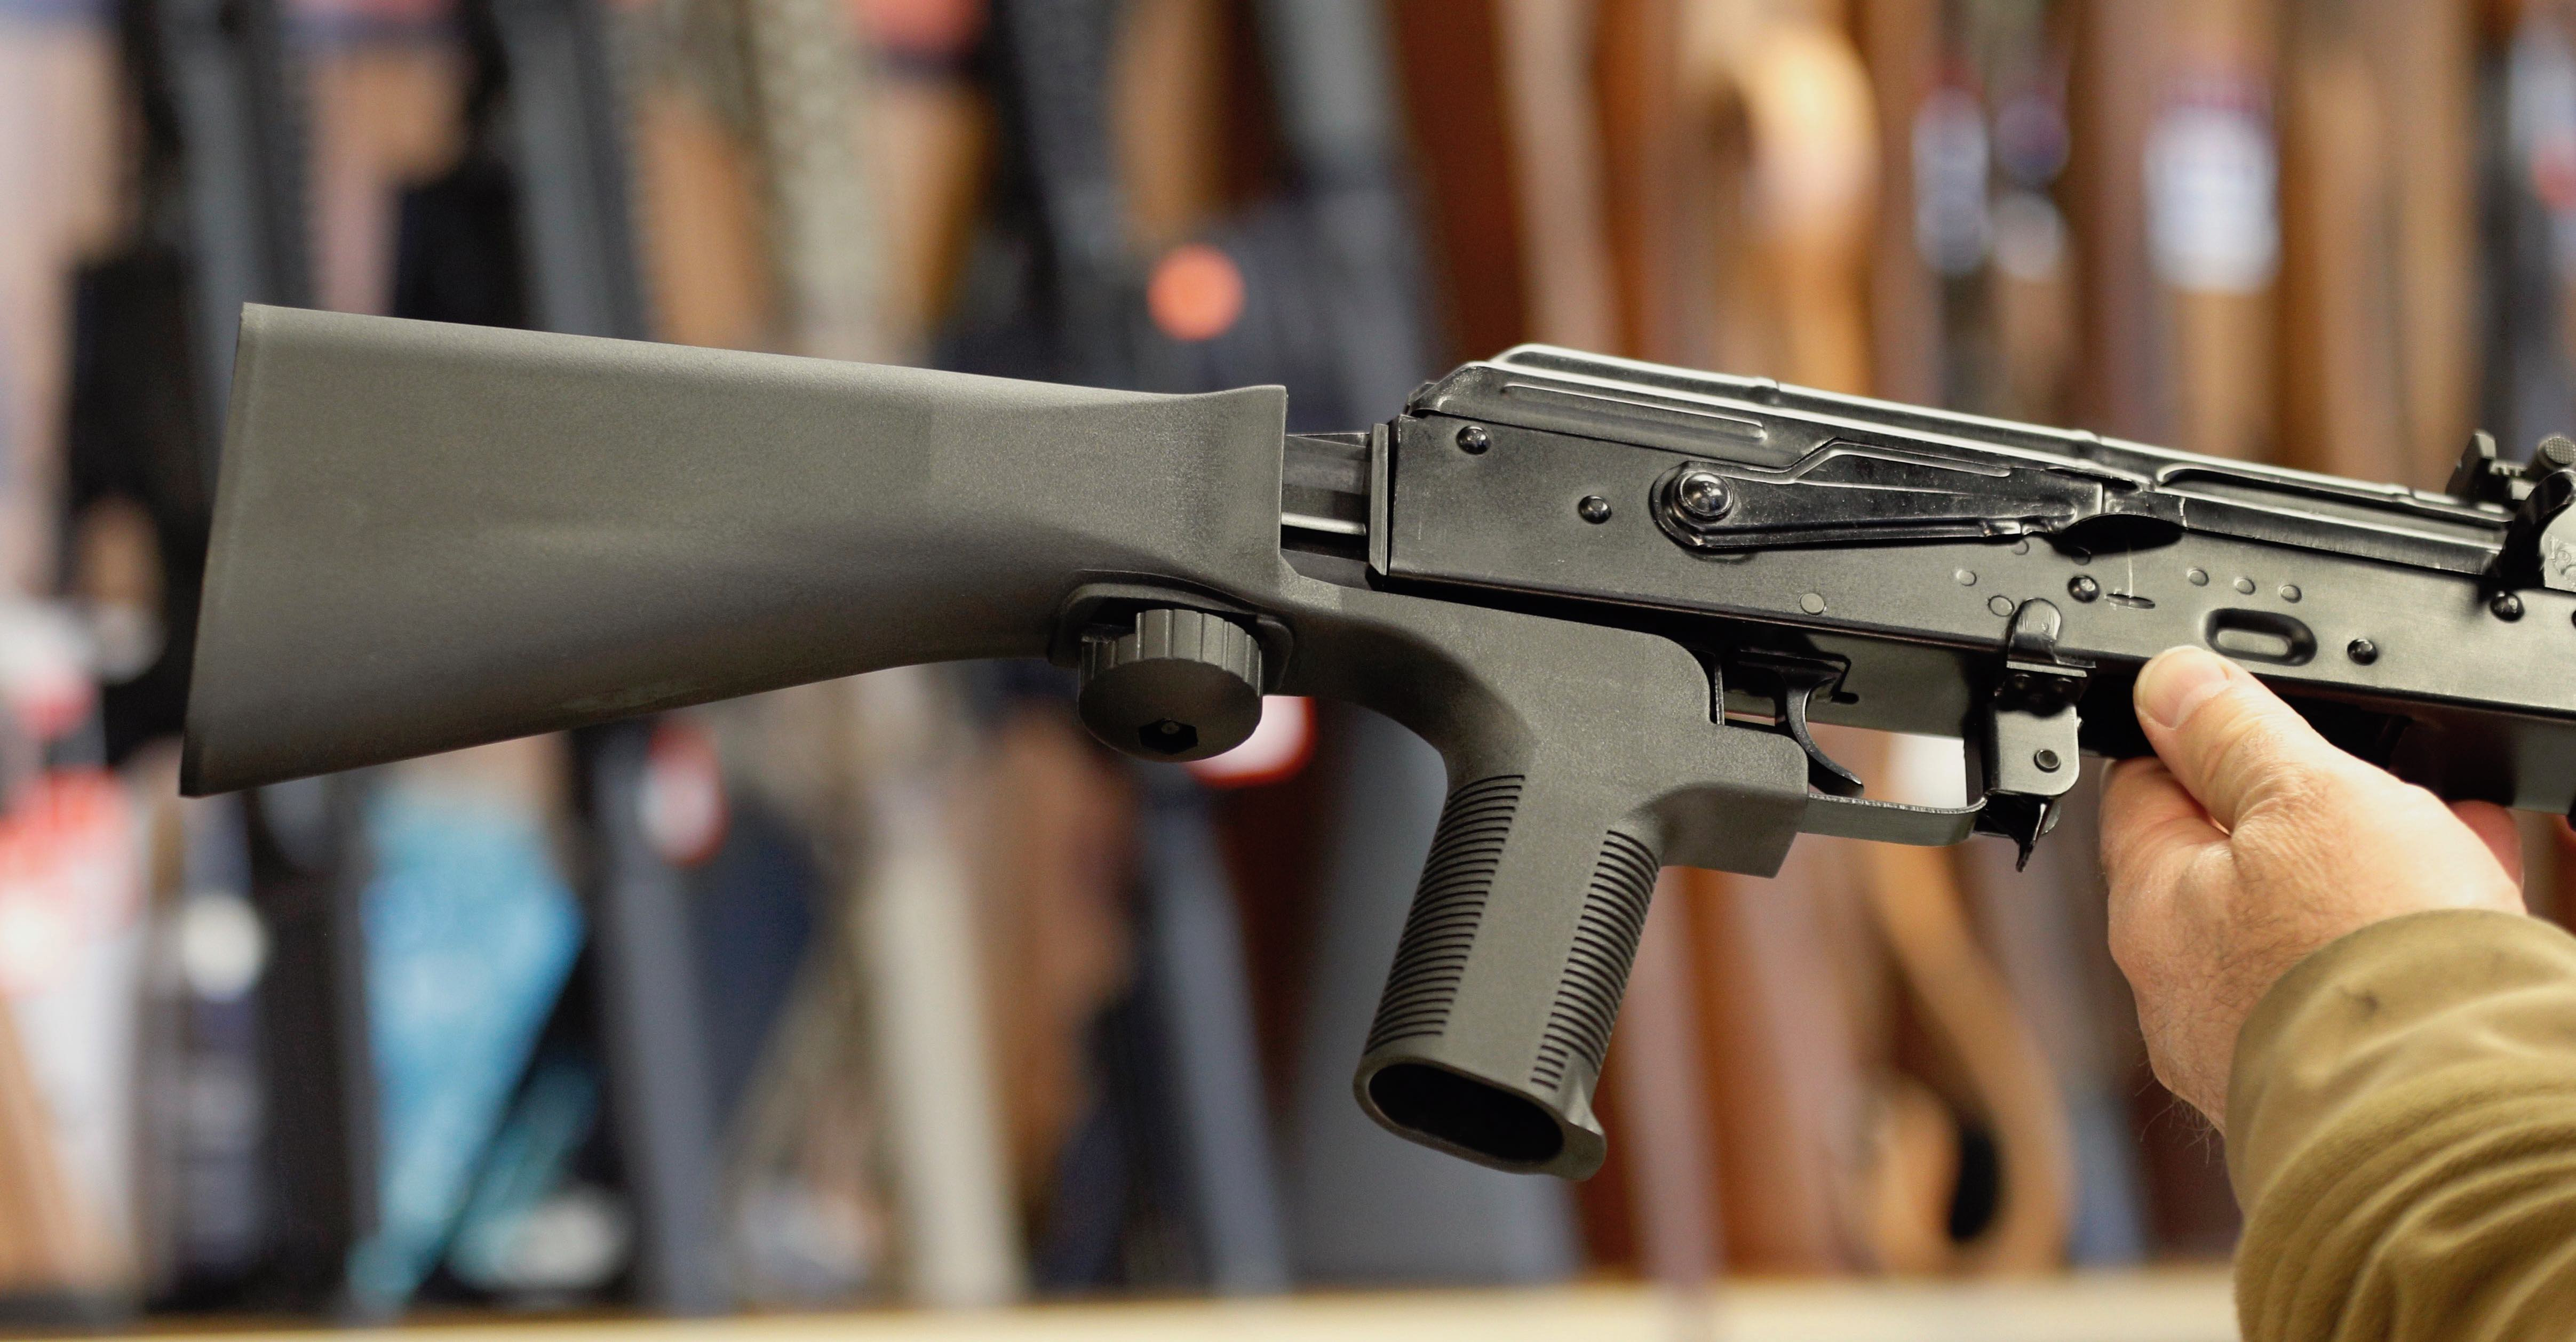 217bb1e034d65 Bank Withheld $1.6 Million From Top Bump Stock Maker After Las Vegas ...